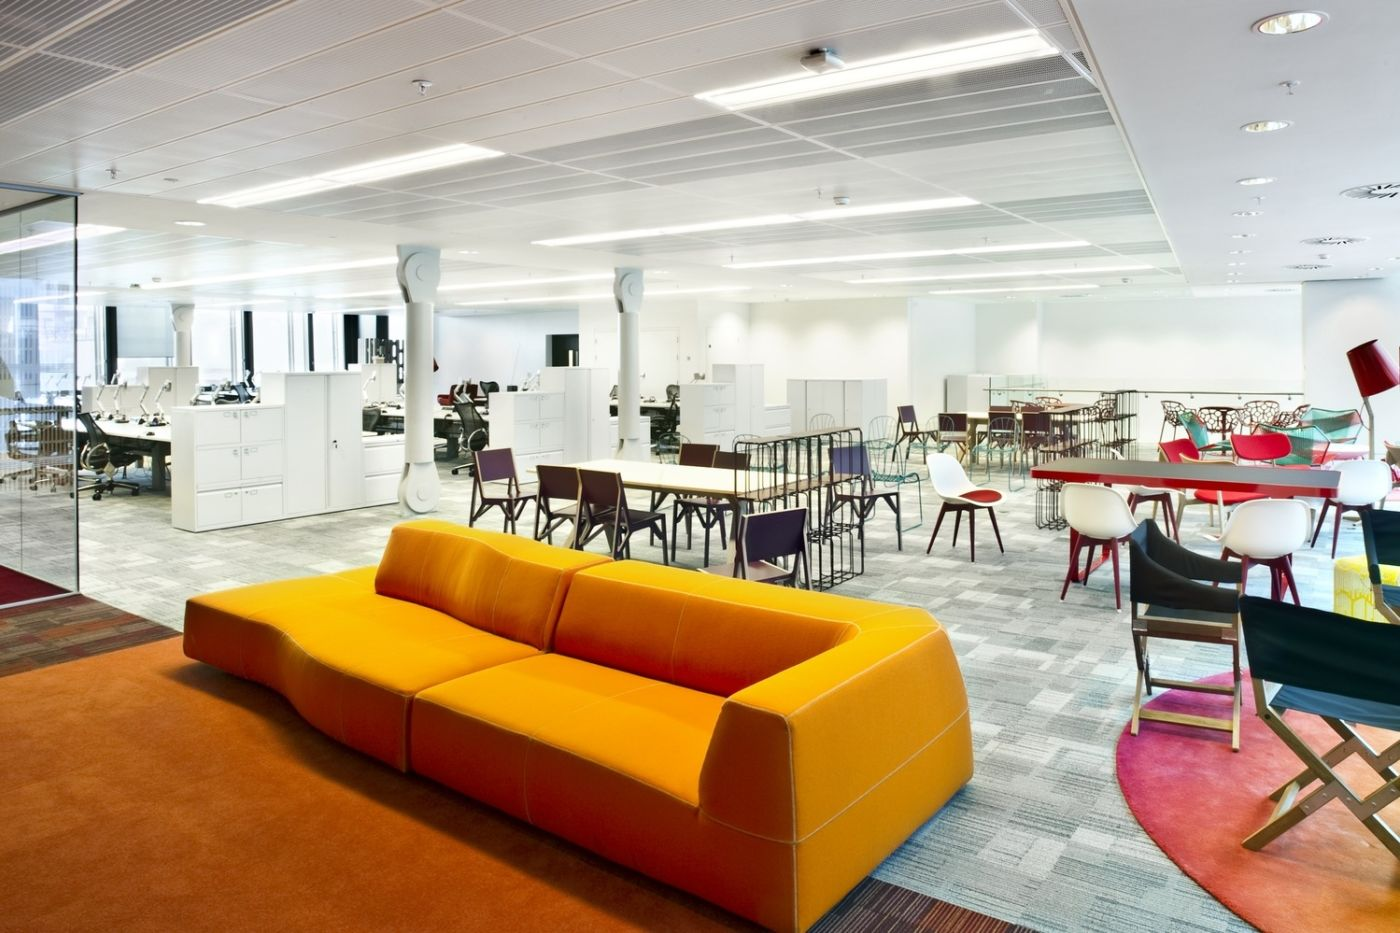 Low yellow sofa and chairs in office break out area